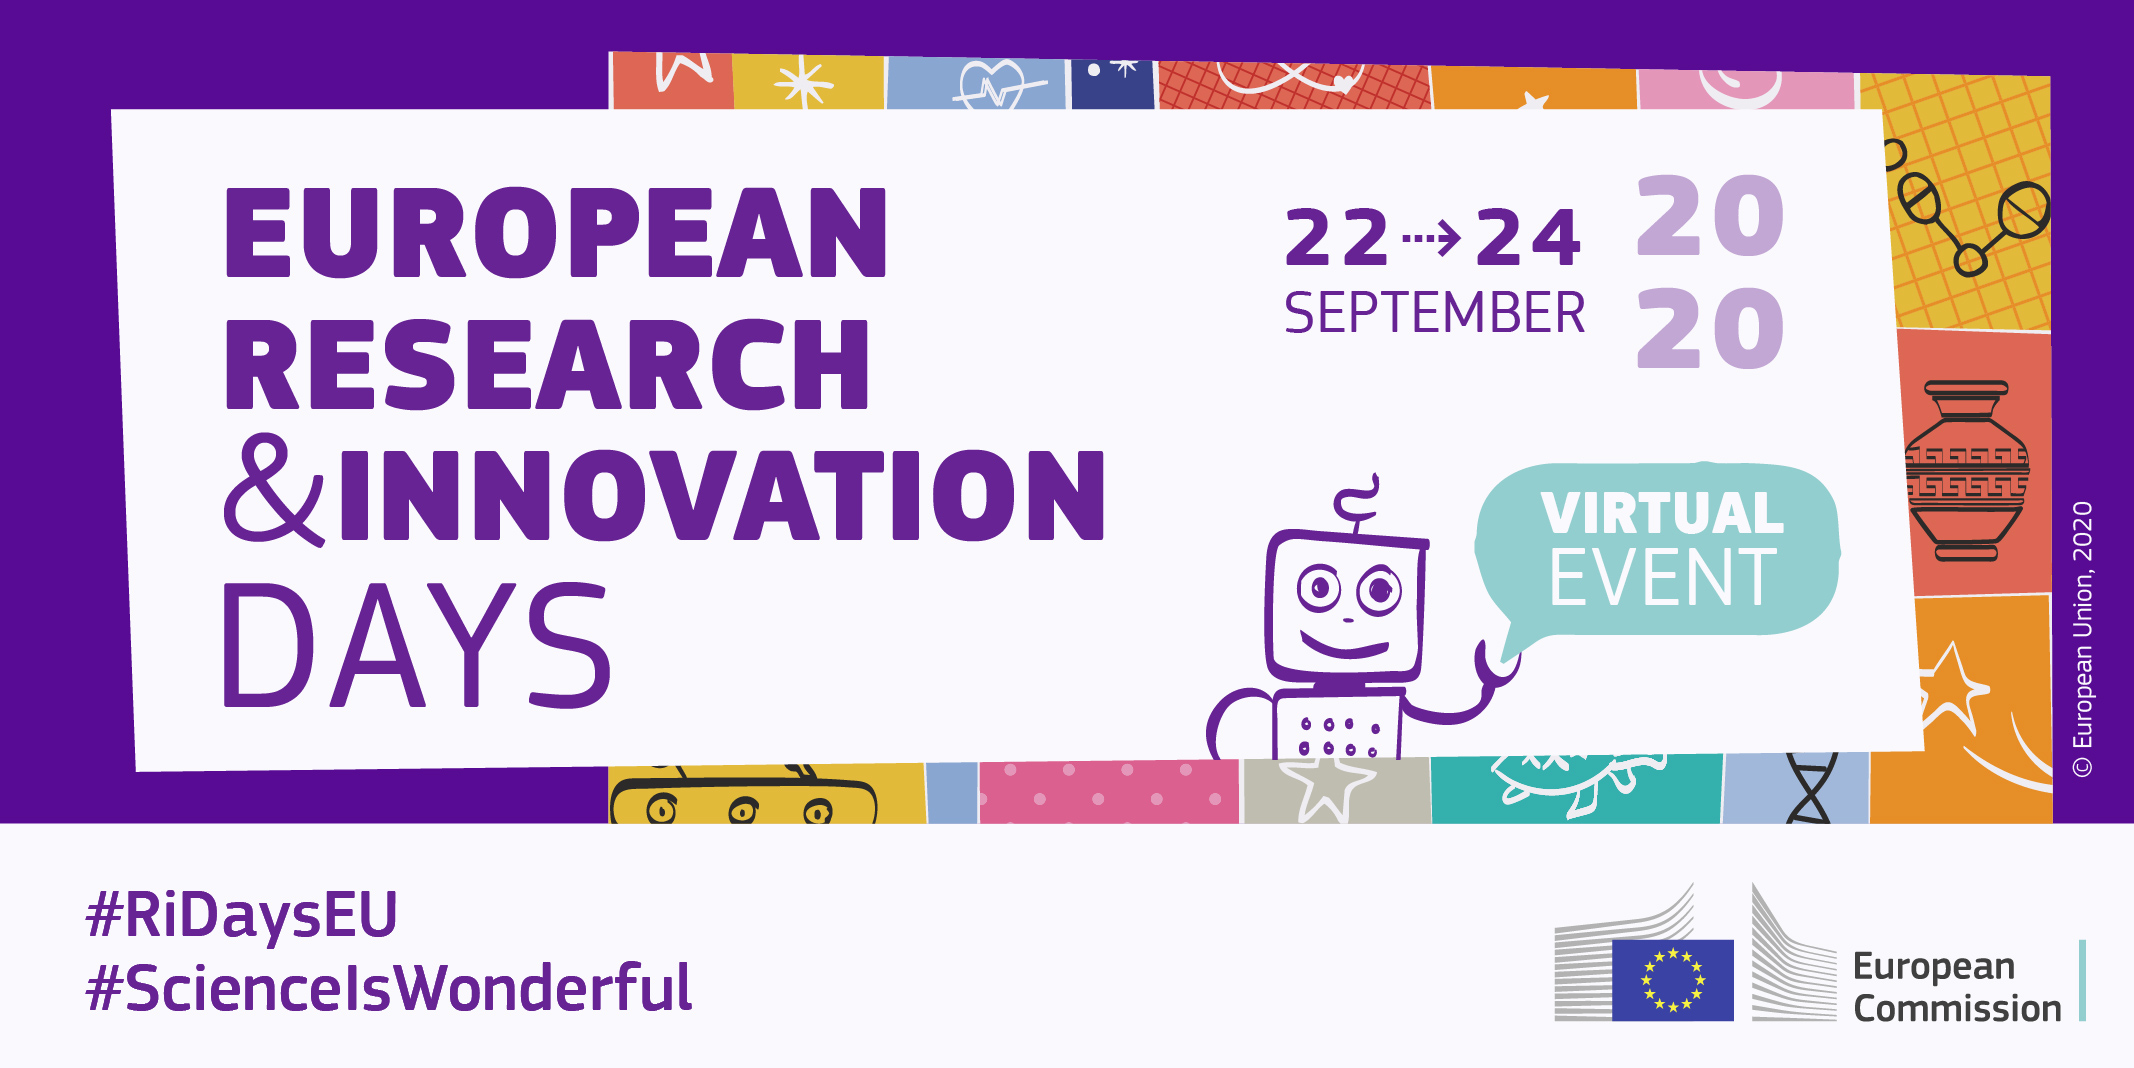 EU research and innovation days